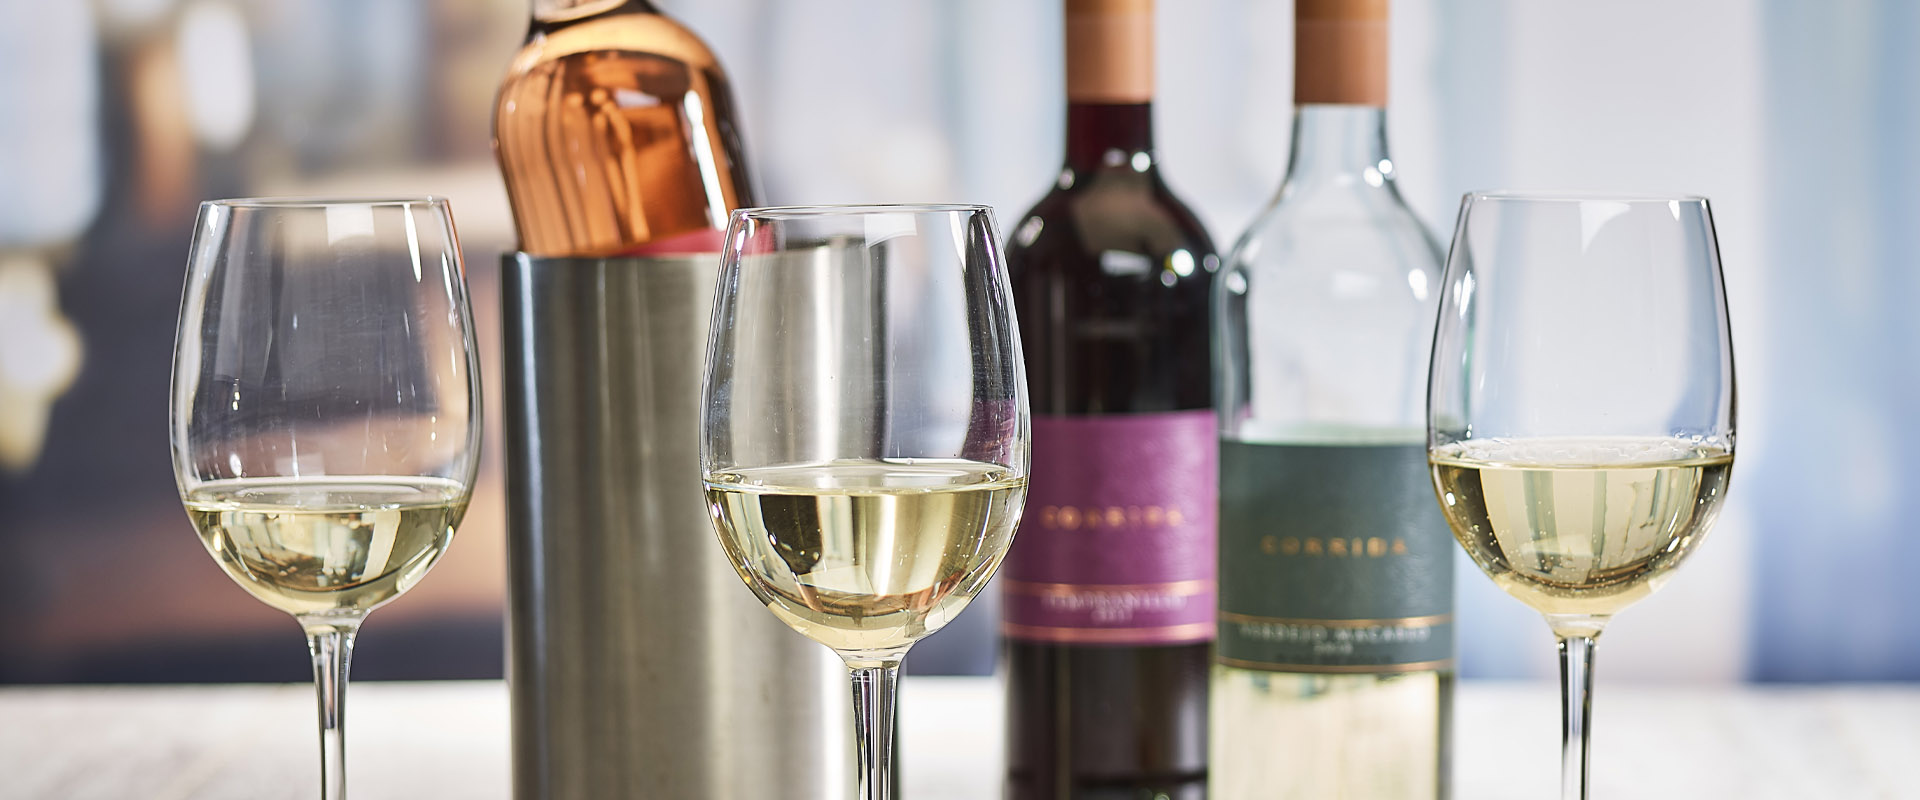 Pre-Pay for Wine this Christmas at The Harrogate Arms